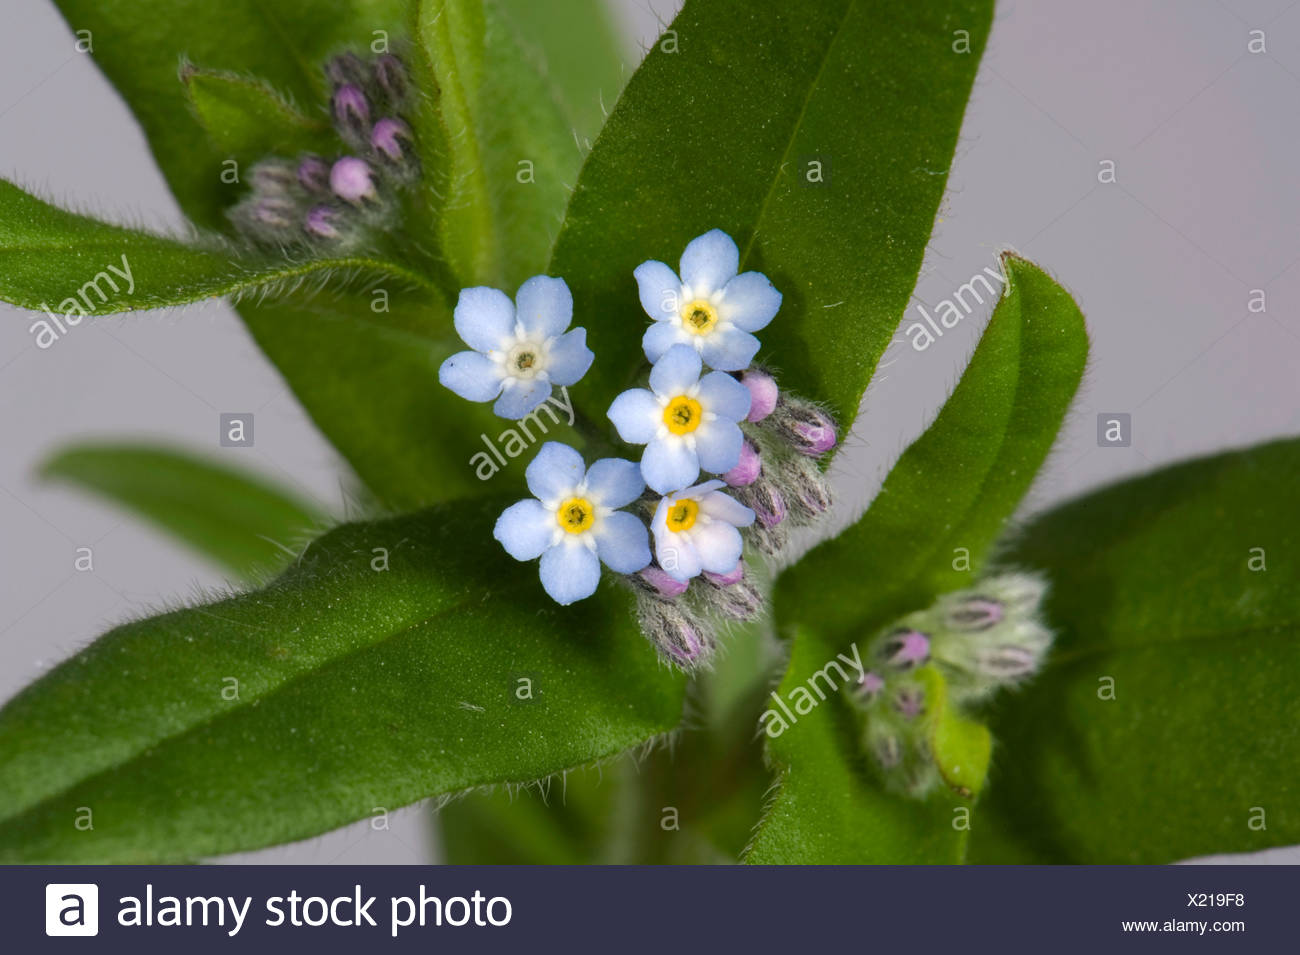 Wild Forget Me Not Myosotis Arvensis Blue Flowers With Yellow And